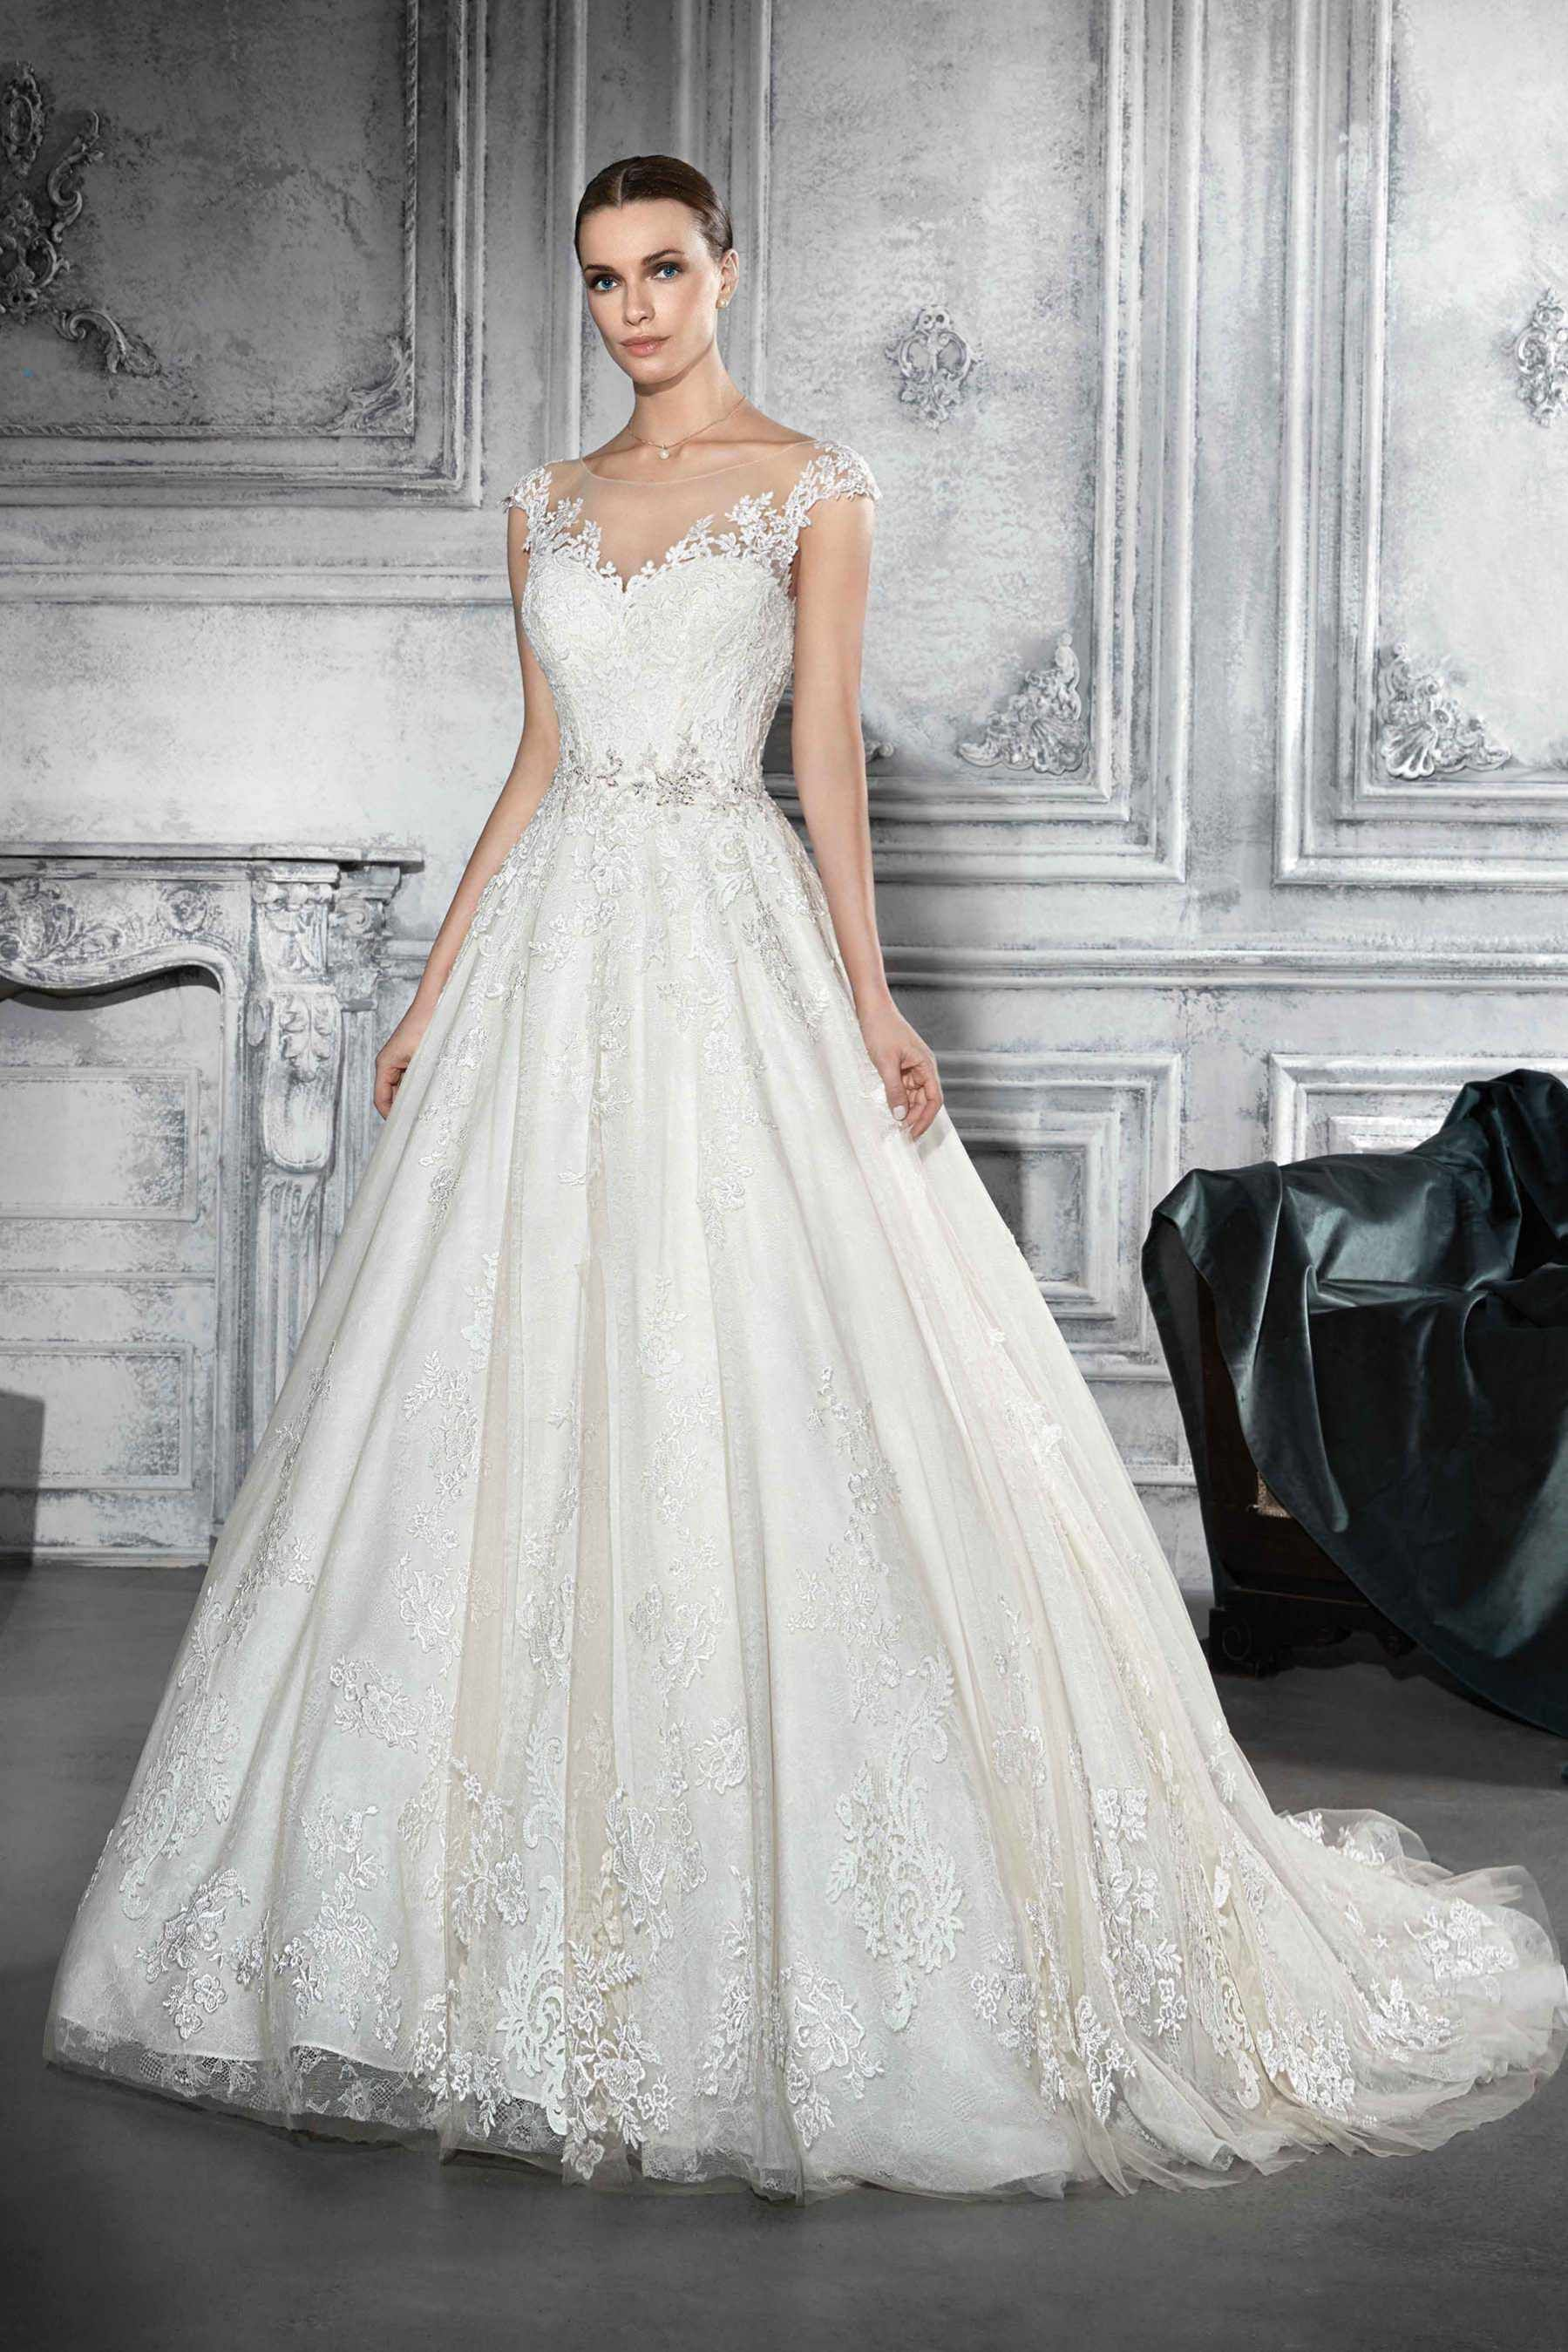 Demetrios Wedding Dress Style 747 Subtle Details Make For A Striking Gown The Illusion Neckline Sits So Delicately Acpanied By Lace Designs: Haute Couture Wedding Dress Sitting At Reisefeber.org